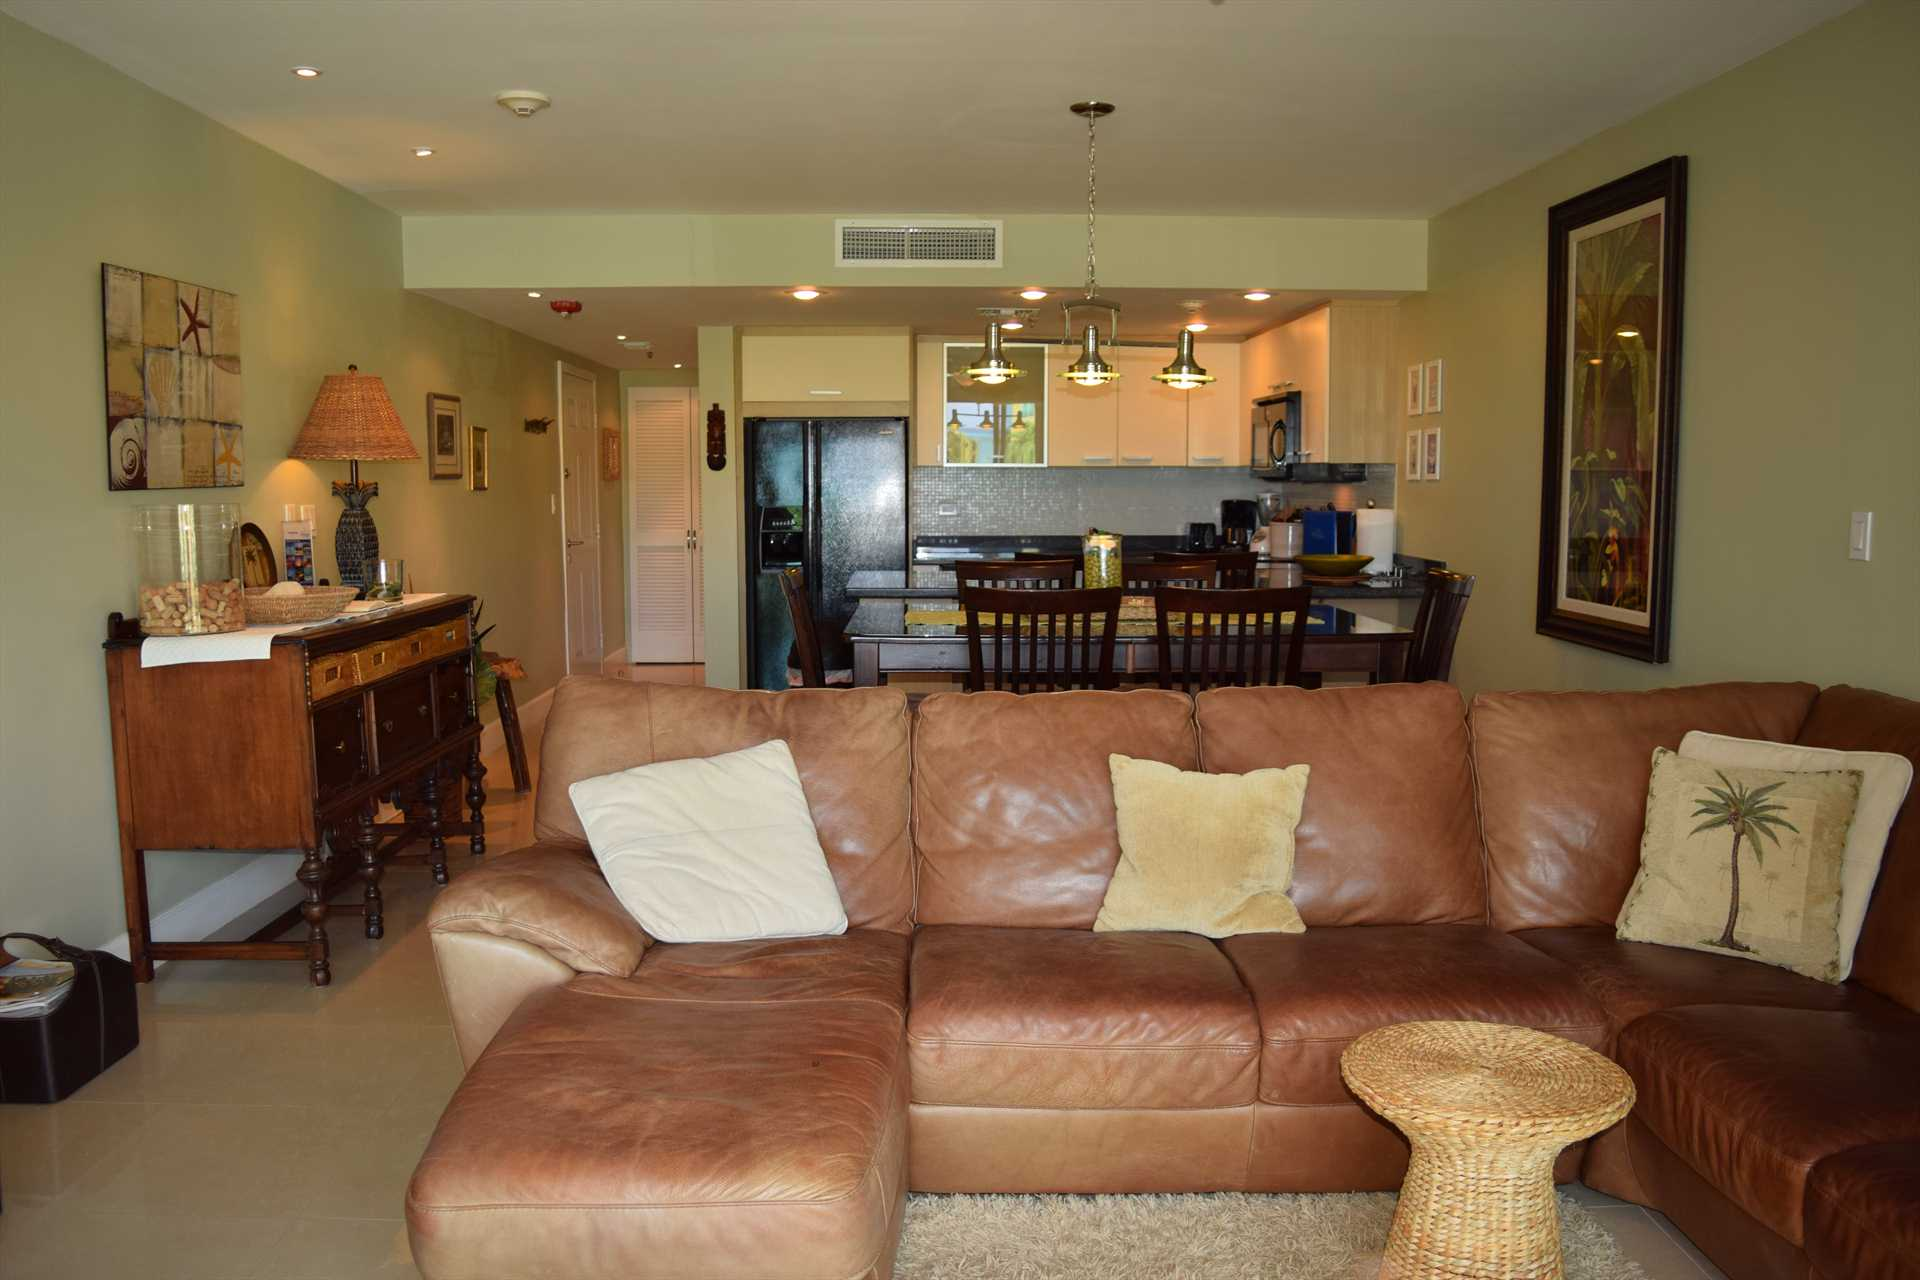 Spacious living/dining area with open kitchen.